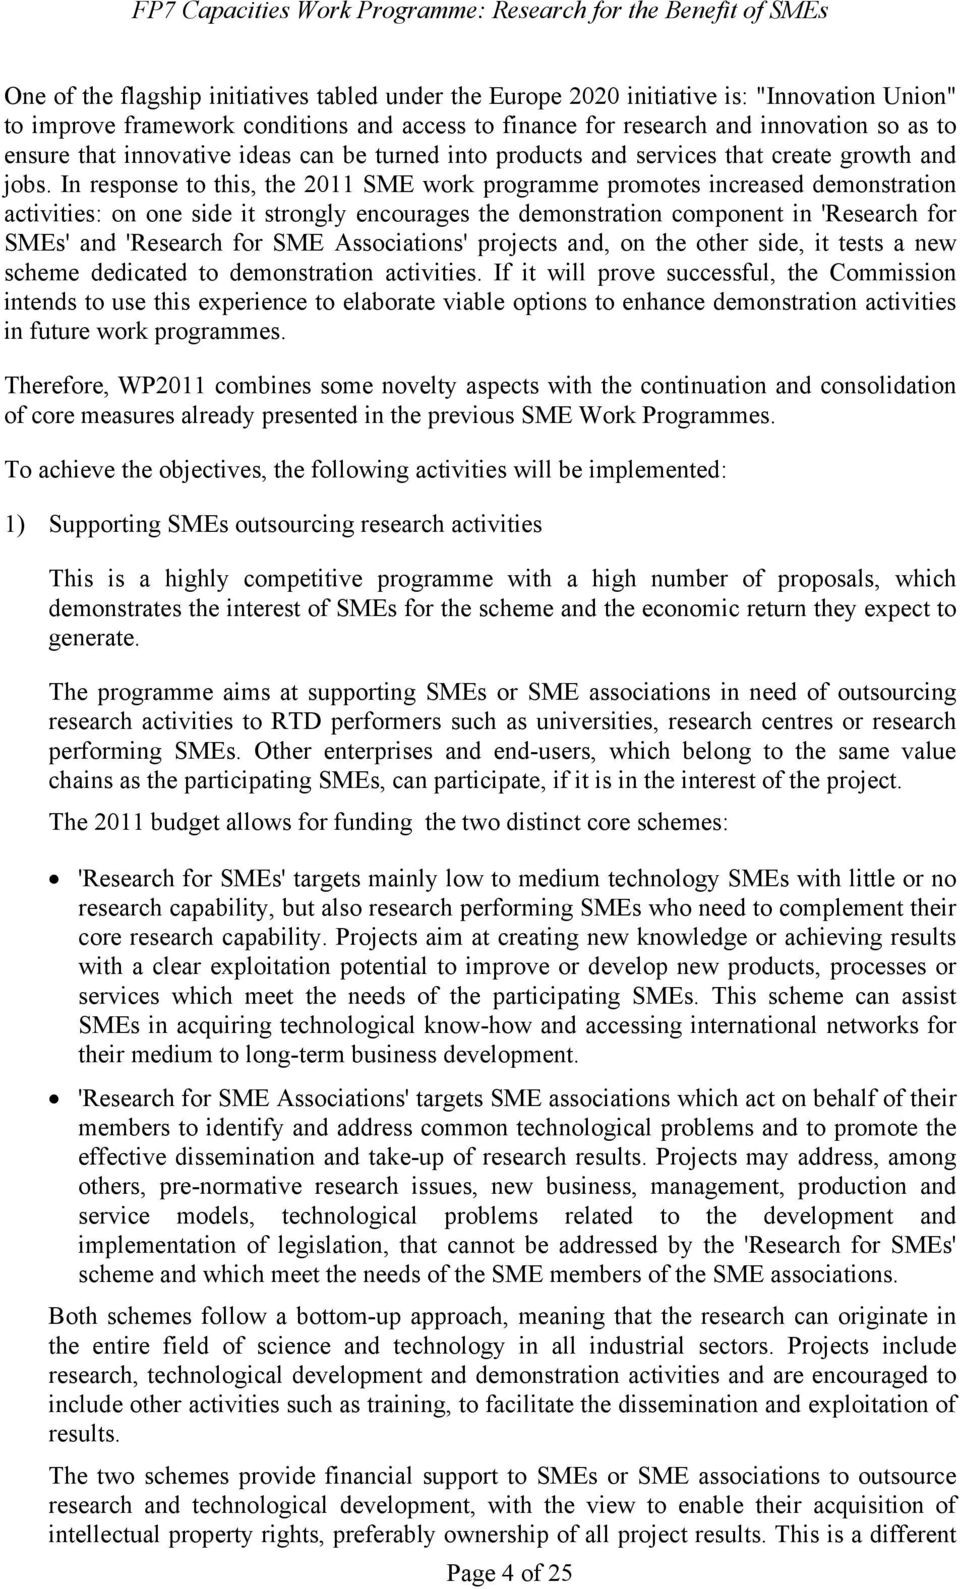 In response to this, the 2011 SME work programme promotes increased demonstration activities: on one side it strongly encourages the demonstration component in 'Research for SMEs' and 'Research for